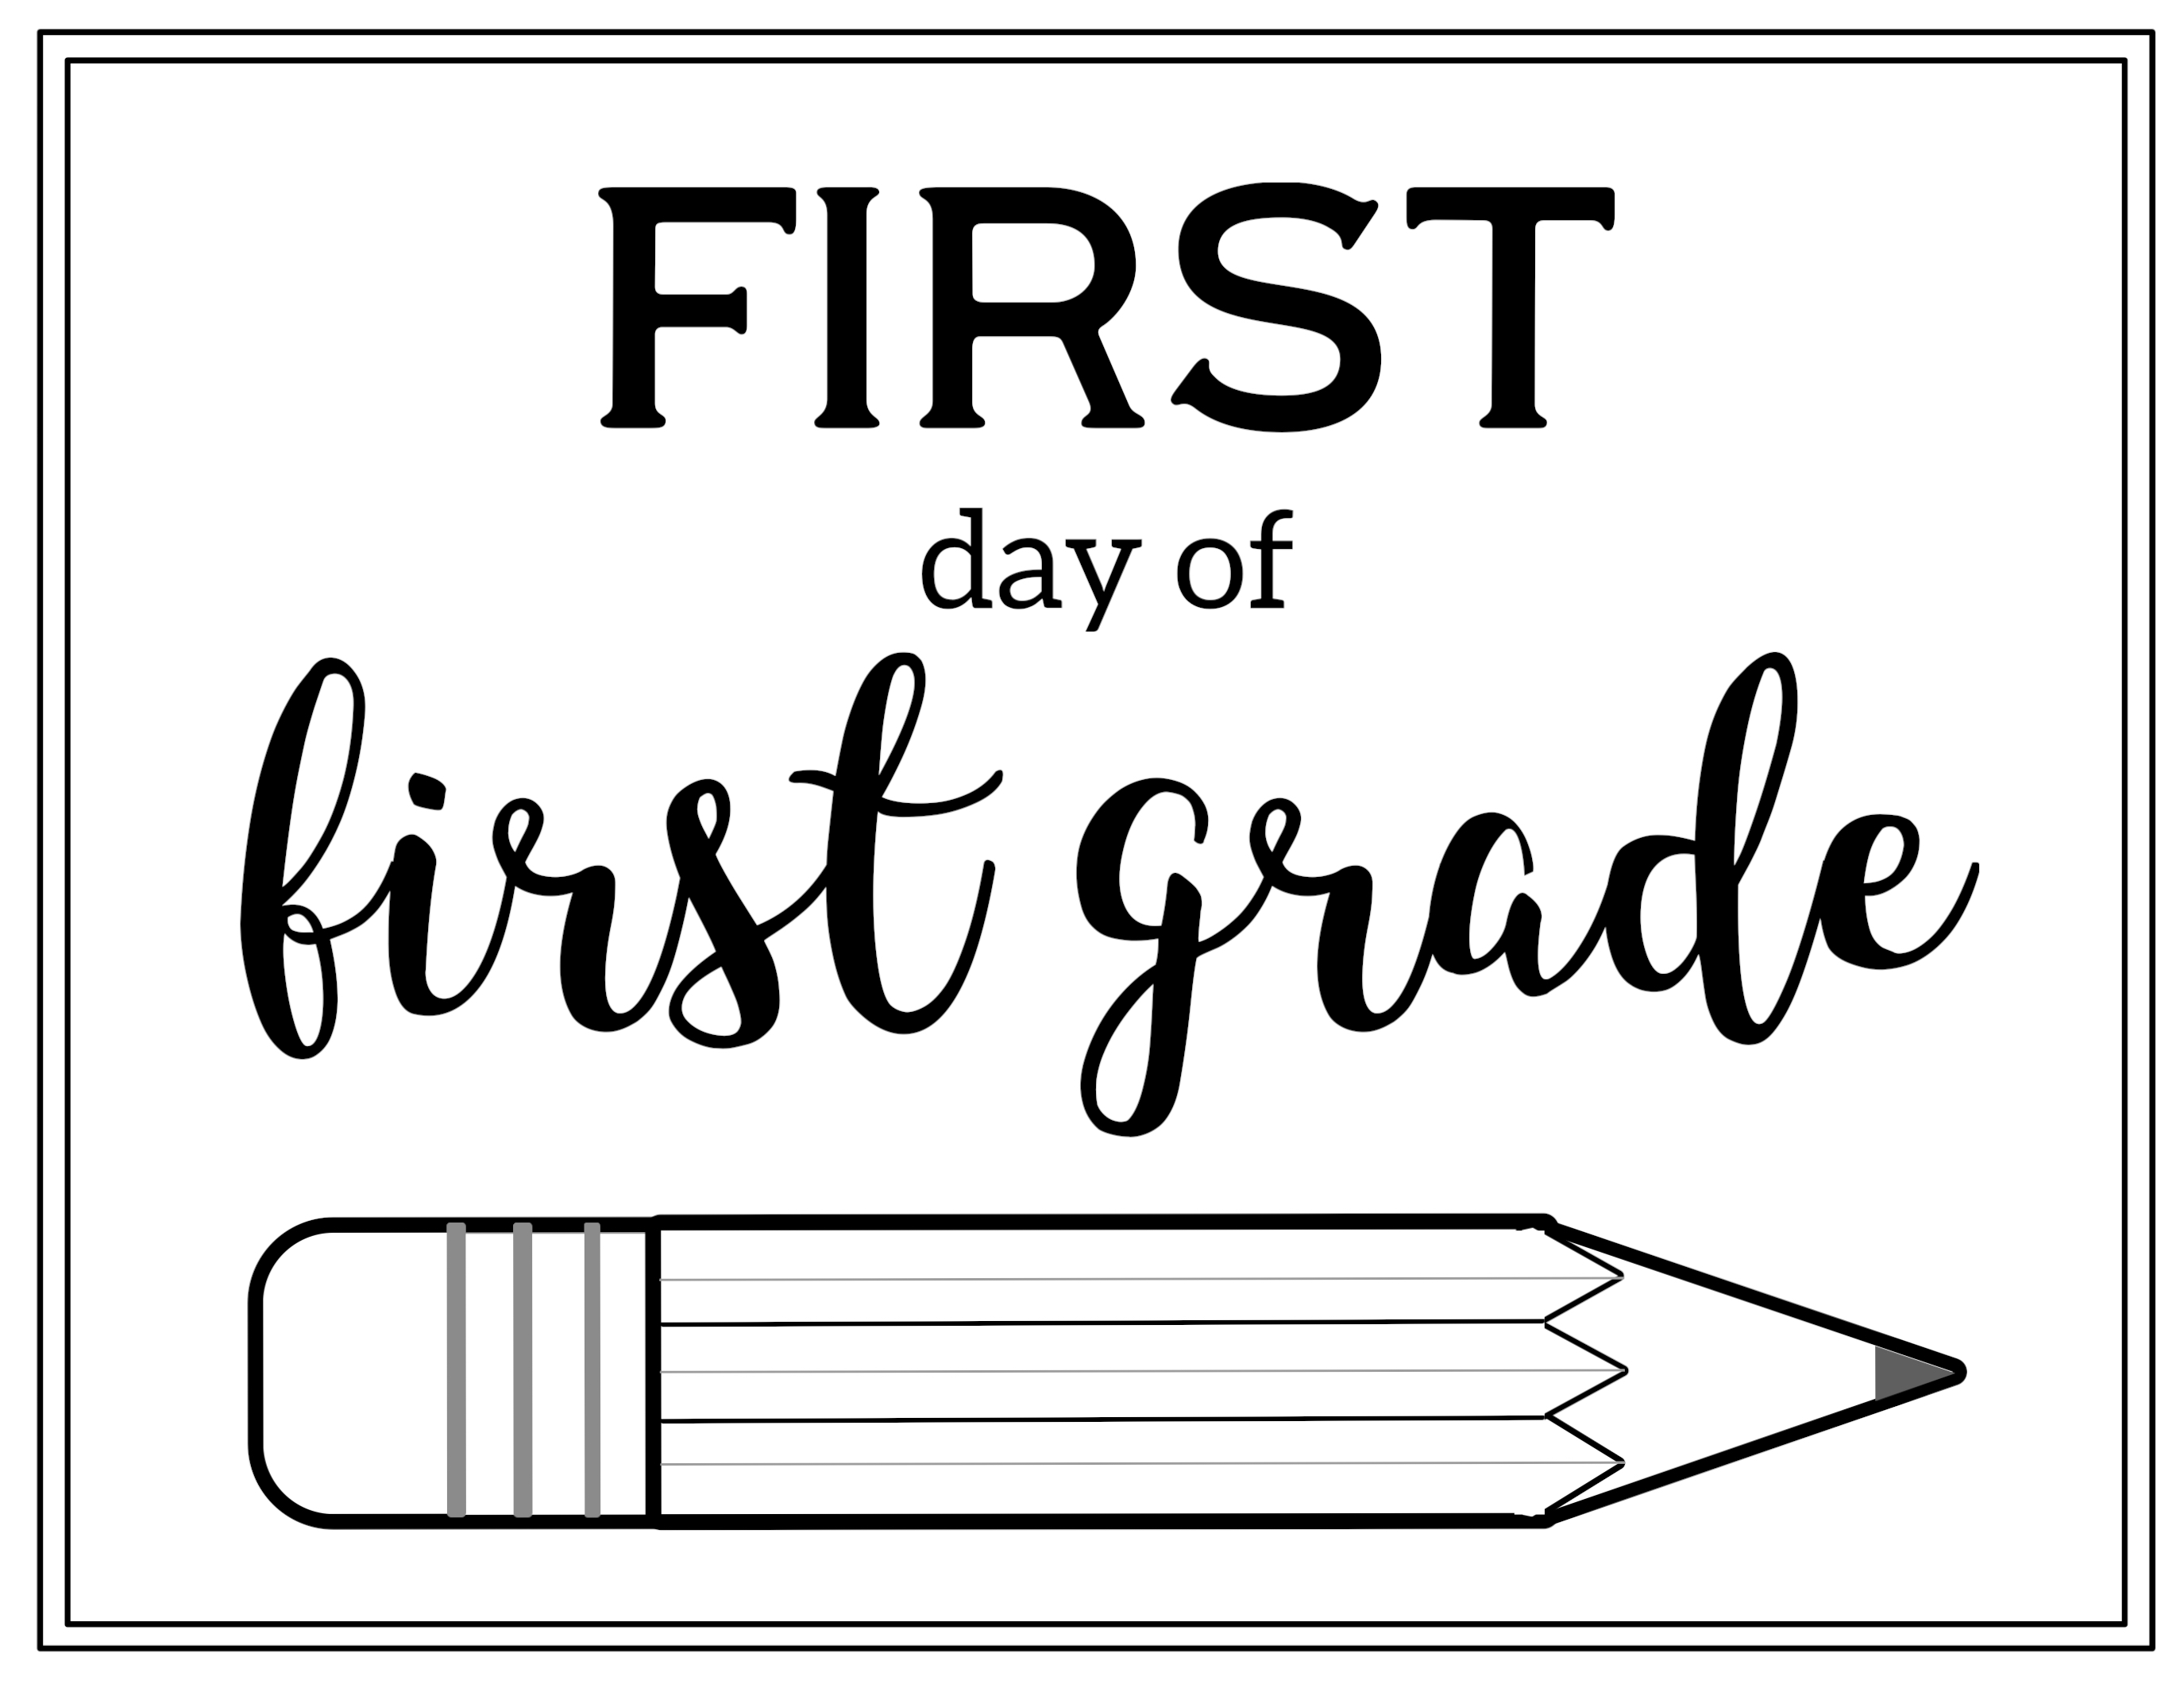 image relating to First Day of Second Grade Printable Sign called Totally free Printable Very first Working day of College or university Signal Pencil - Paper